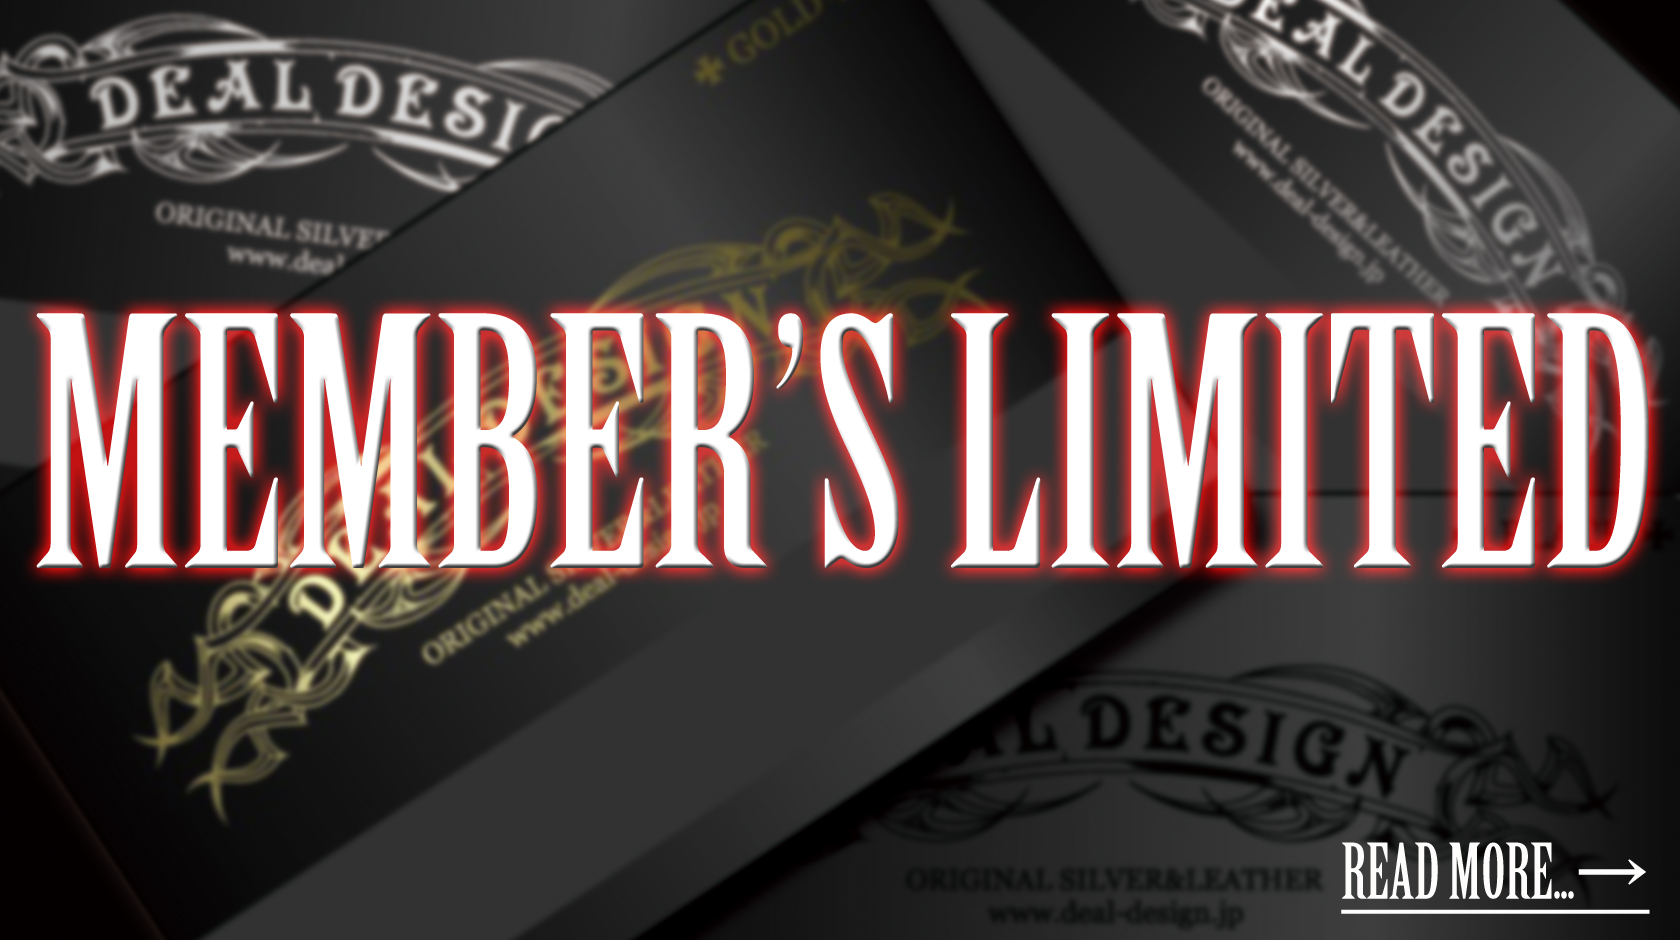 MEMBER'S LIMITED